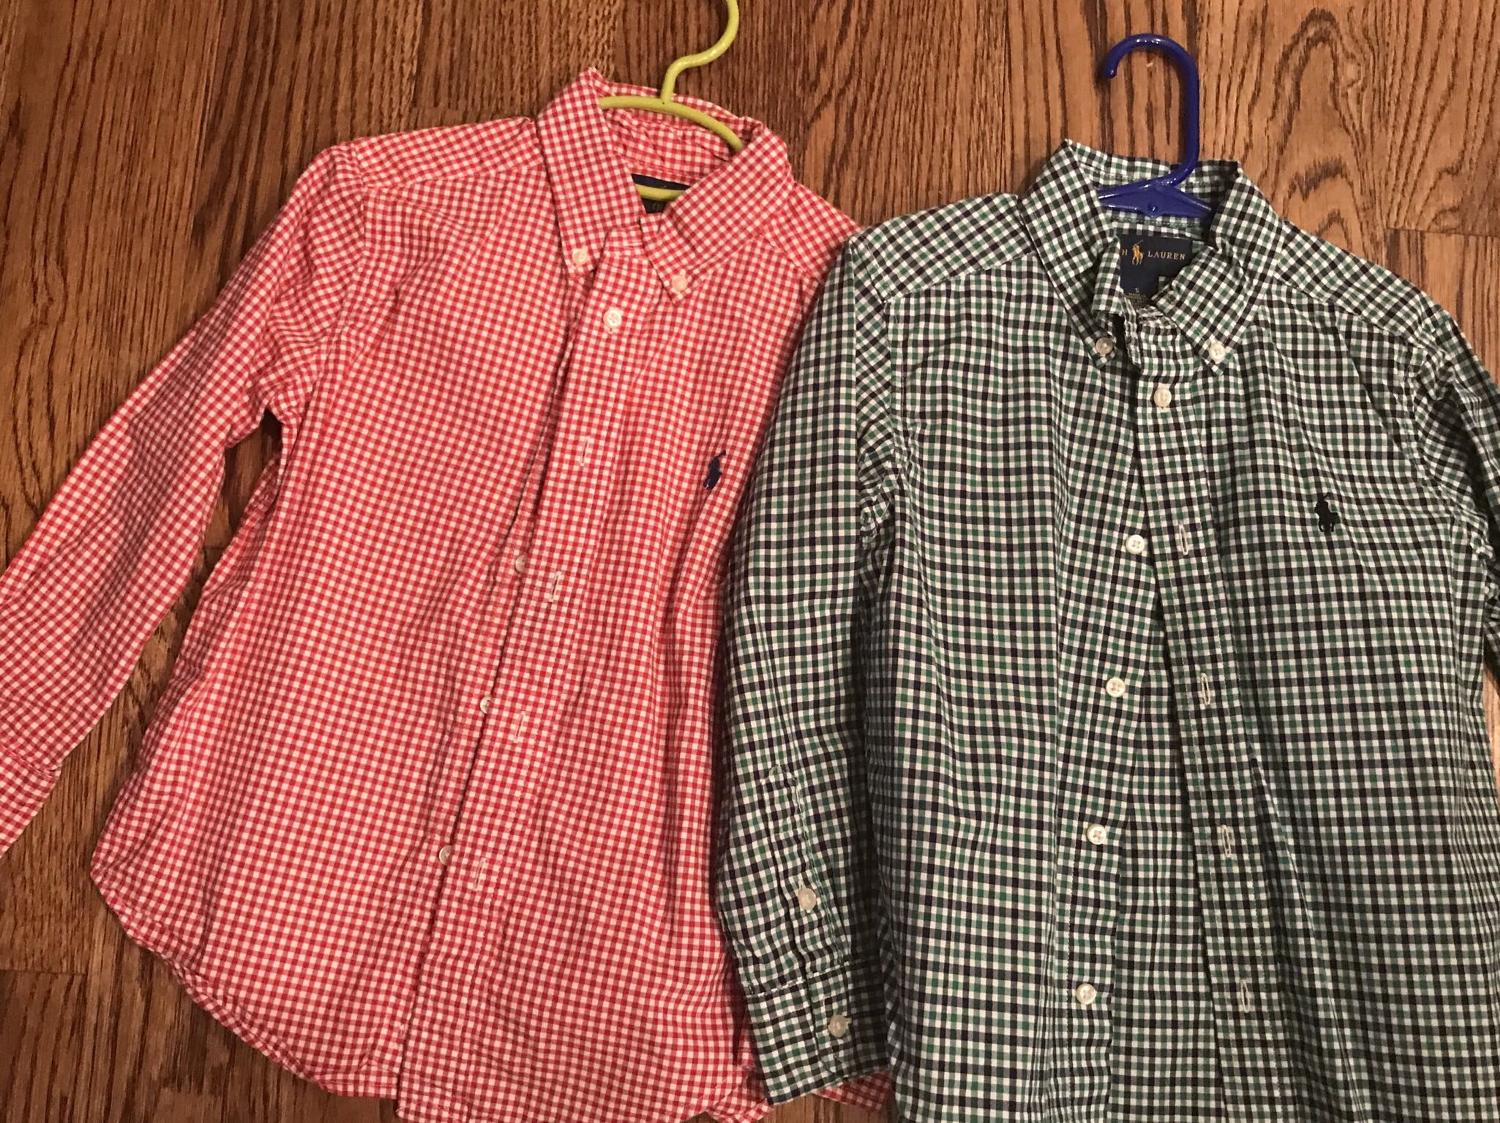 Find More 2 Boys Size 5 Ralph Lauren Dress Shirts Euc For Sale At